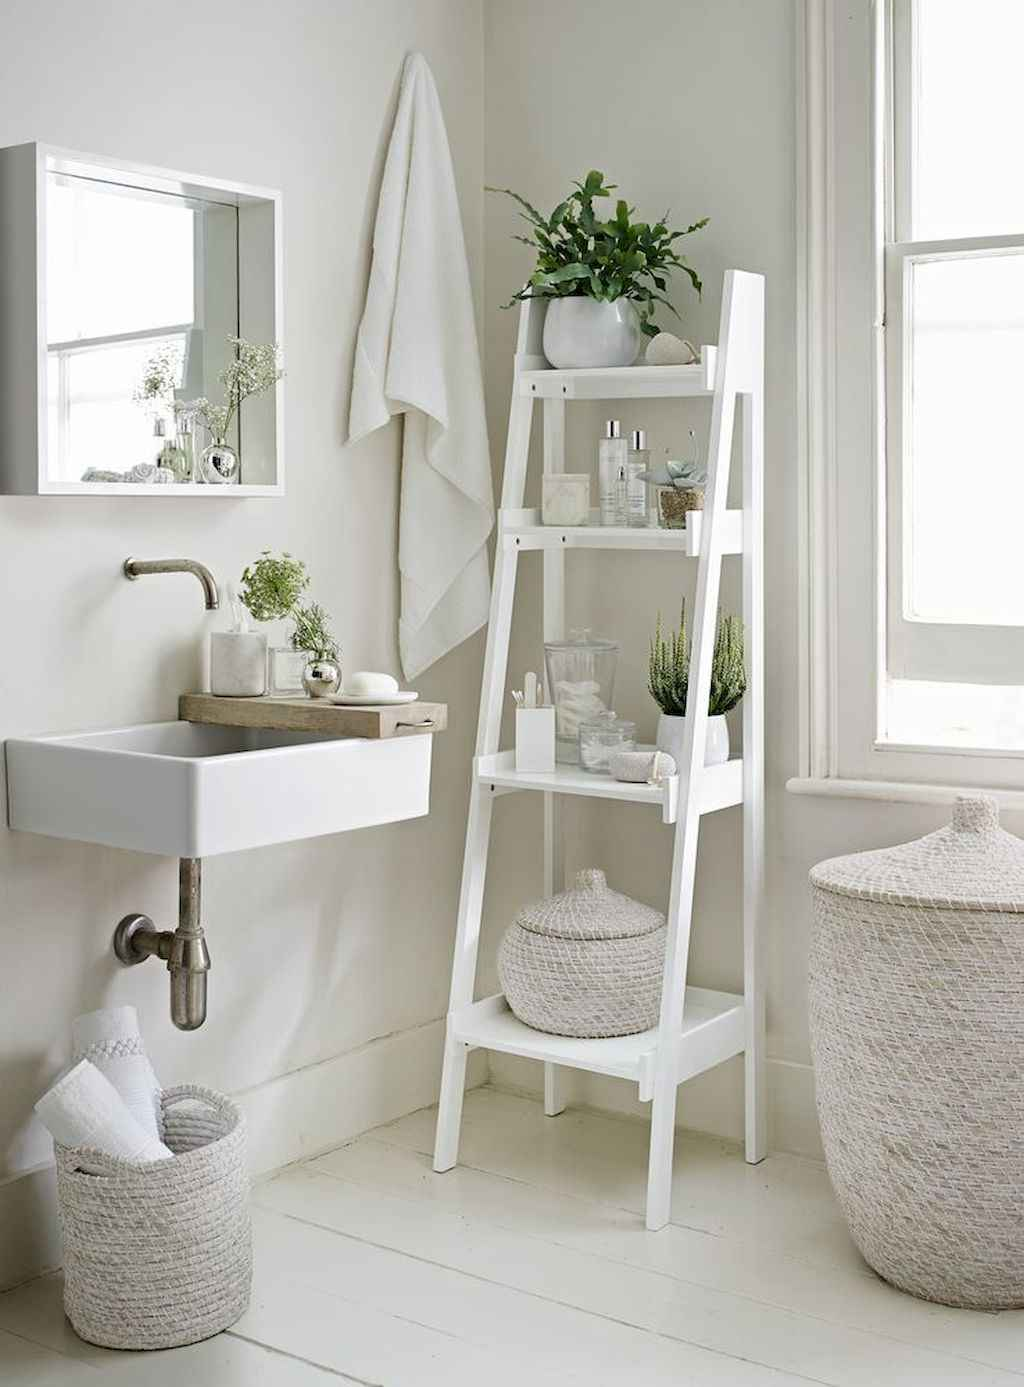 111 awesome small bathroom remodel ideas on a budget (103 ...